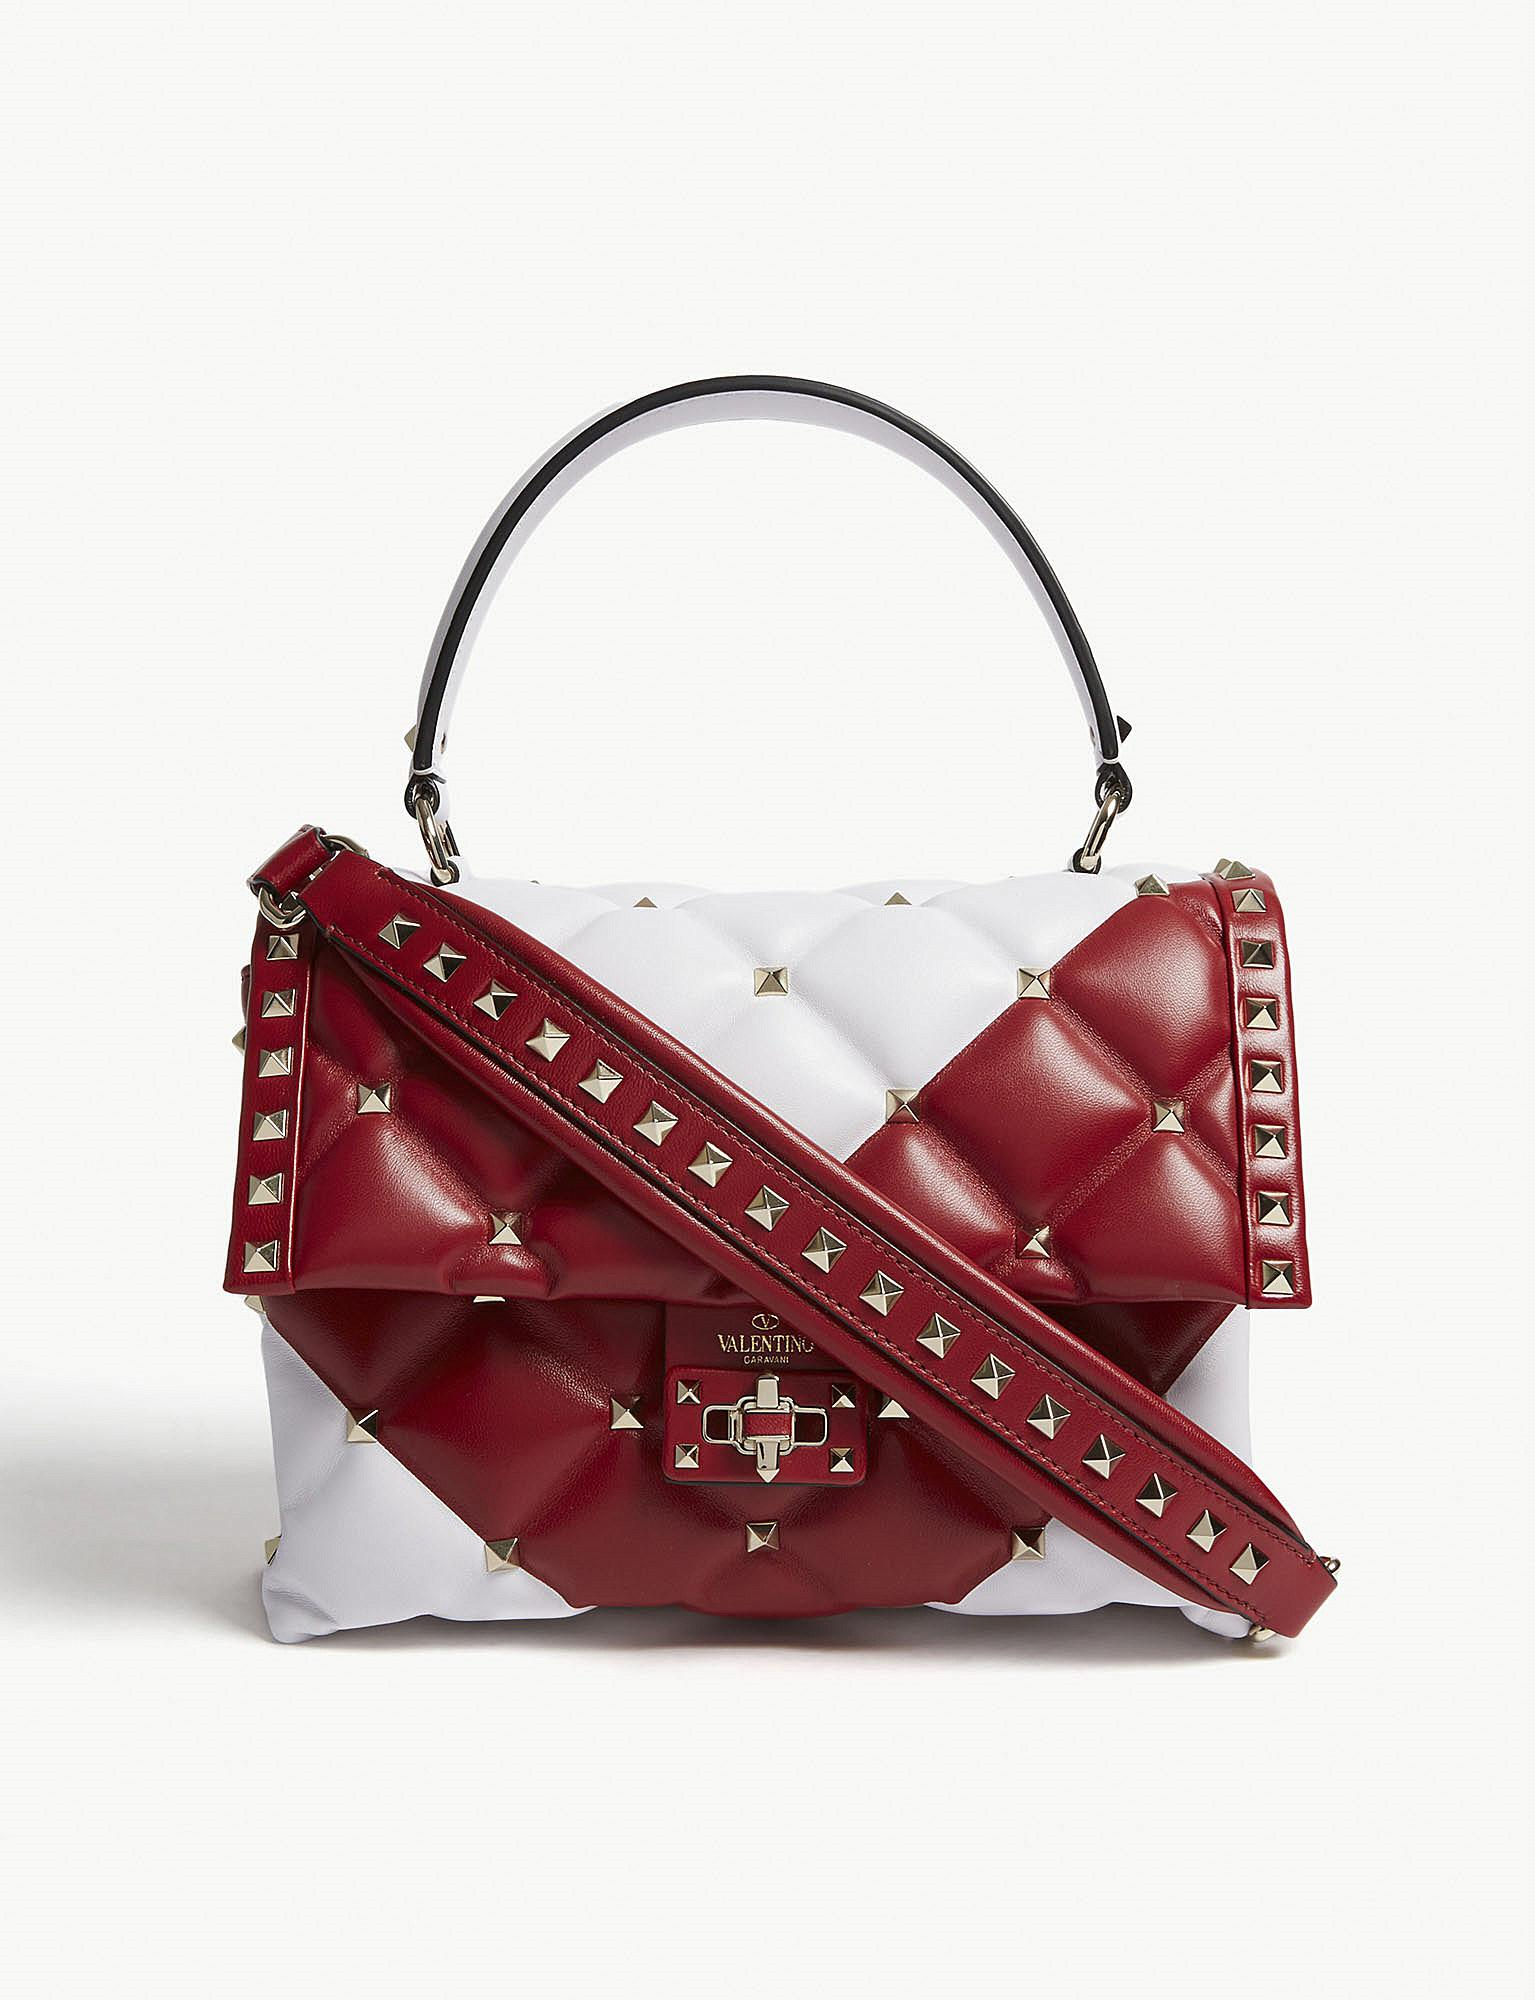 3a04f0a6e85c8 Valentino Candystud Quilted Leather Shoulder Bag in Red - Lyst